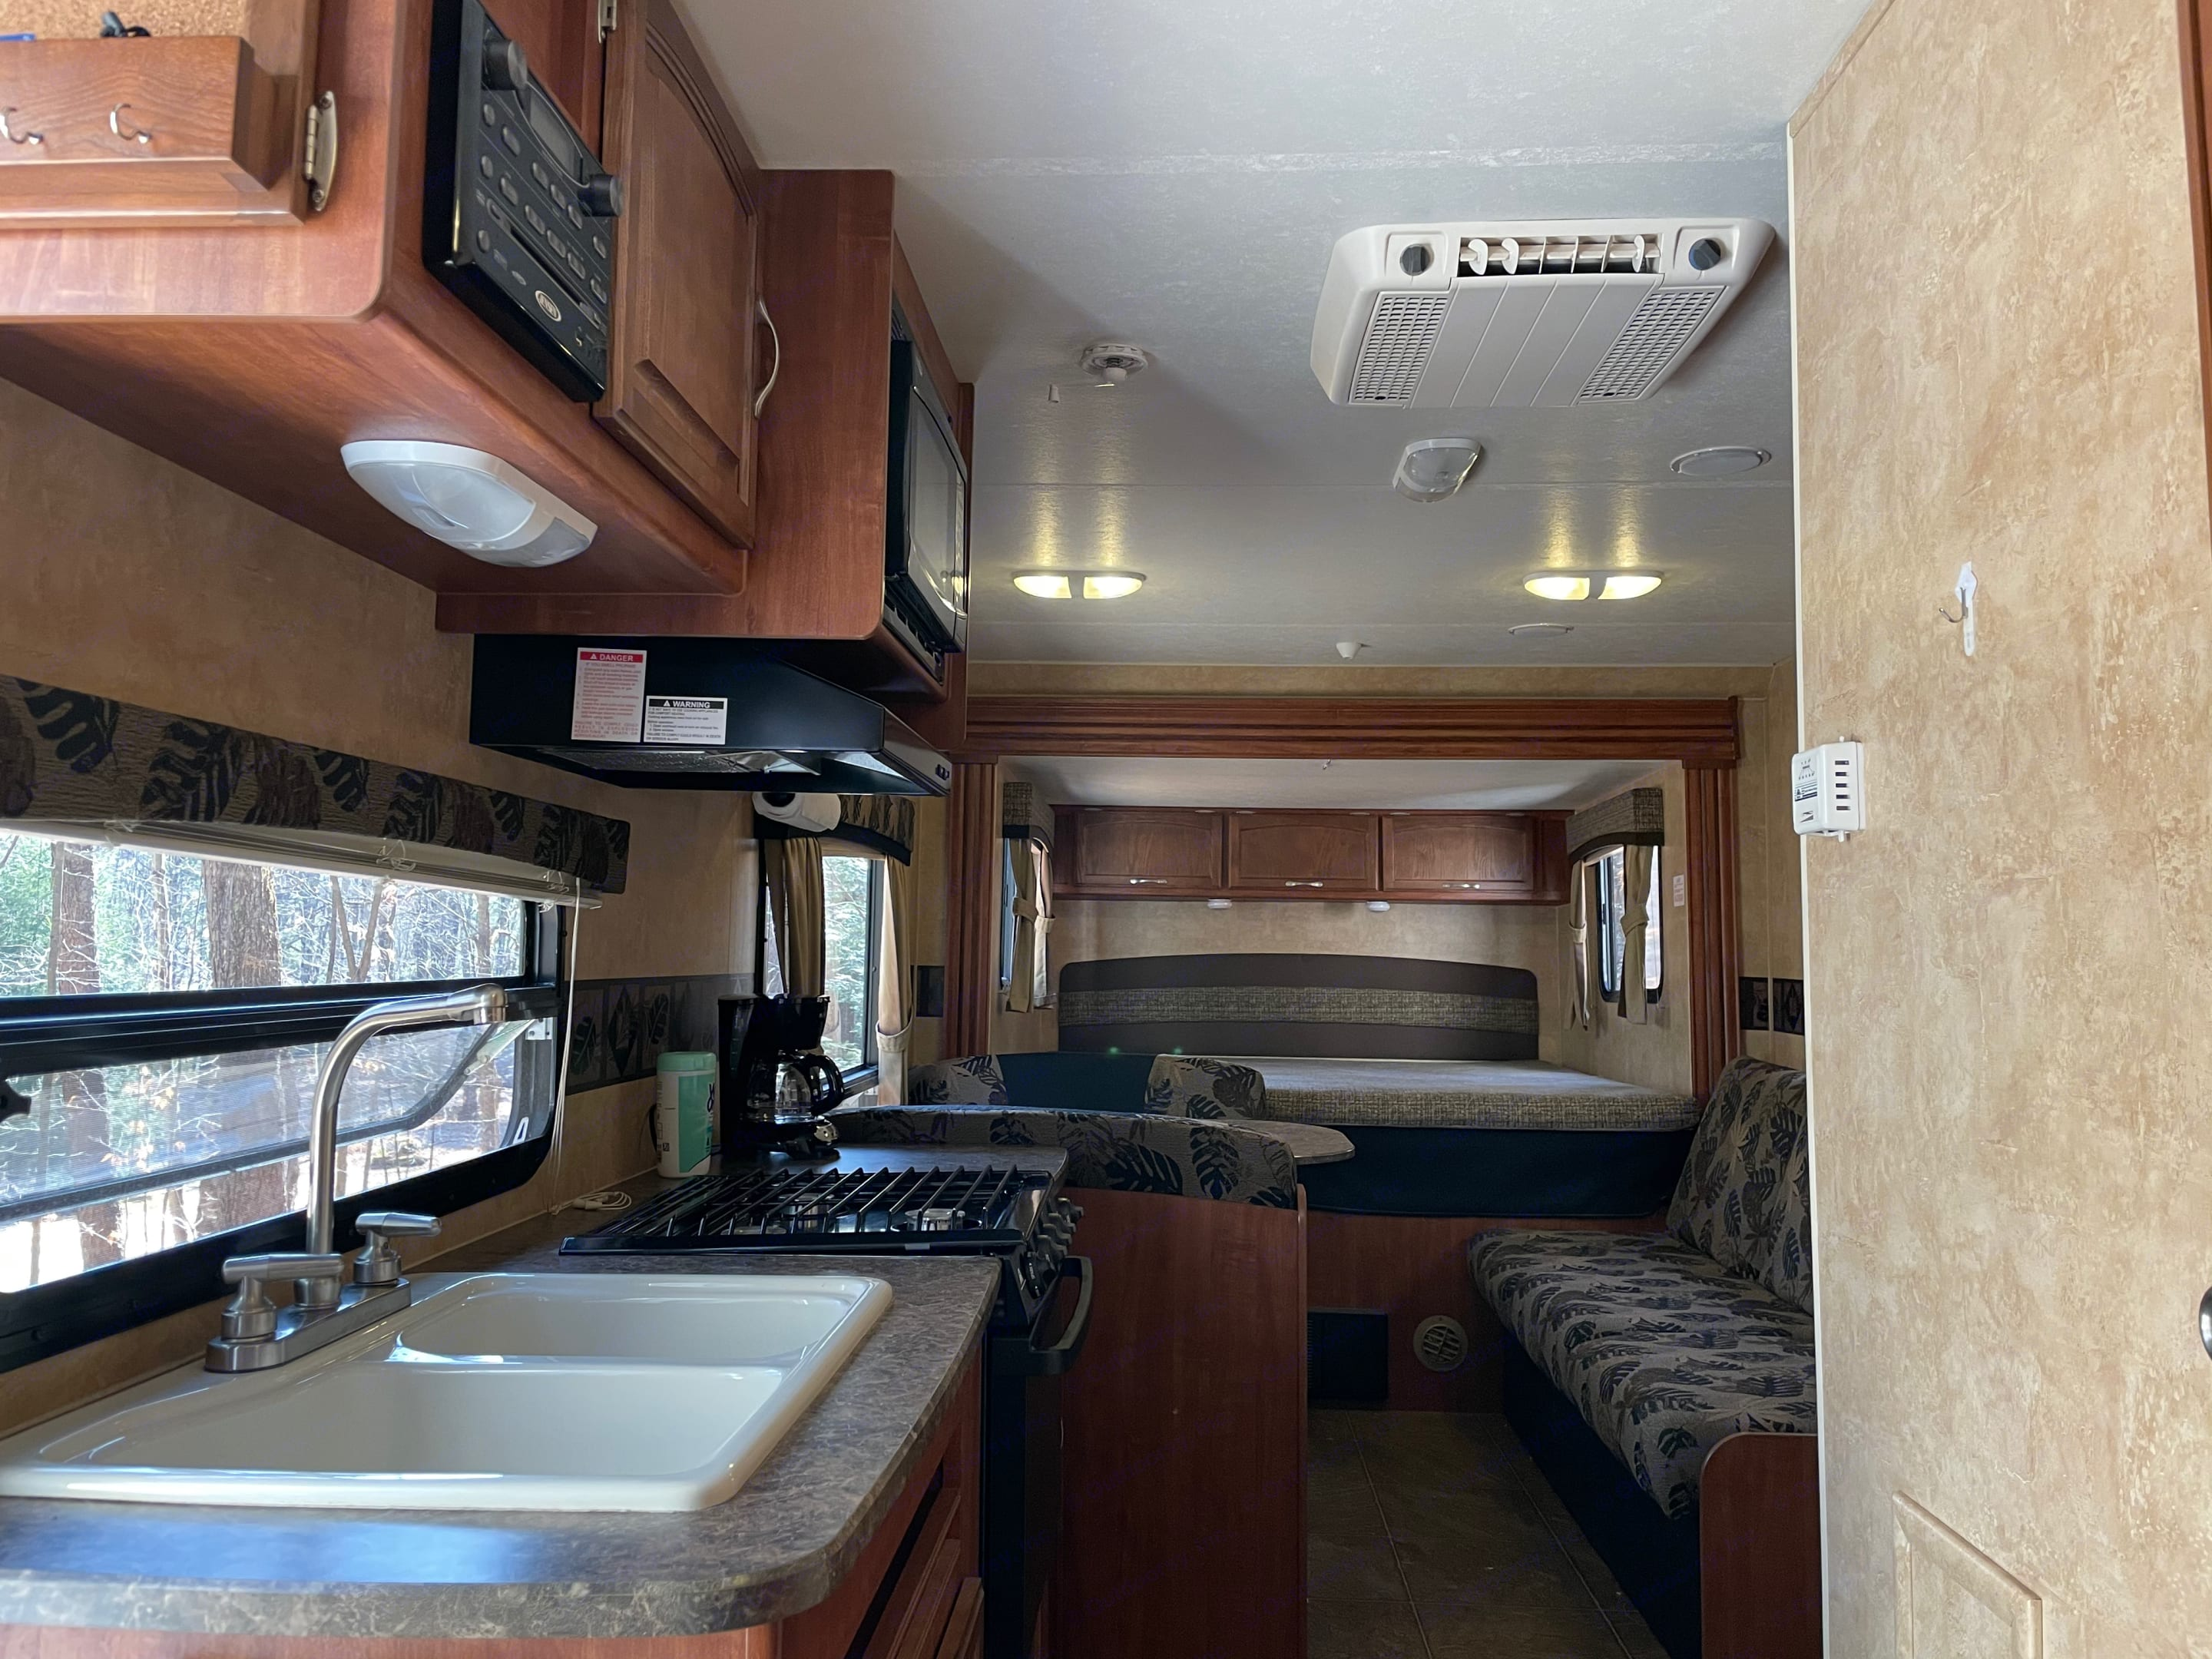 Double sink, radio, air conditioner, range, and stove vent.. Jayco Jay Feather Select 2011